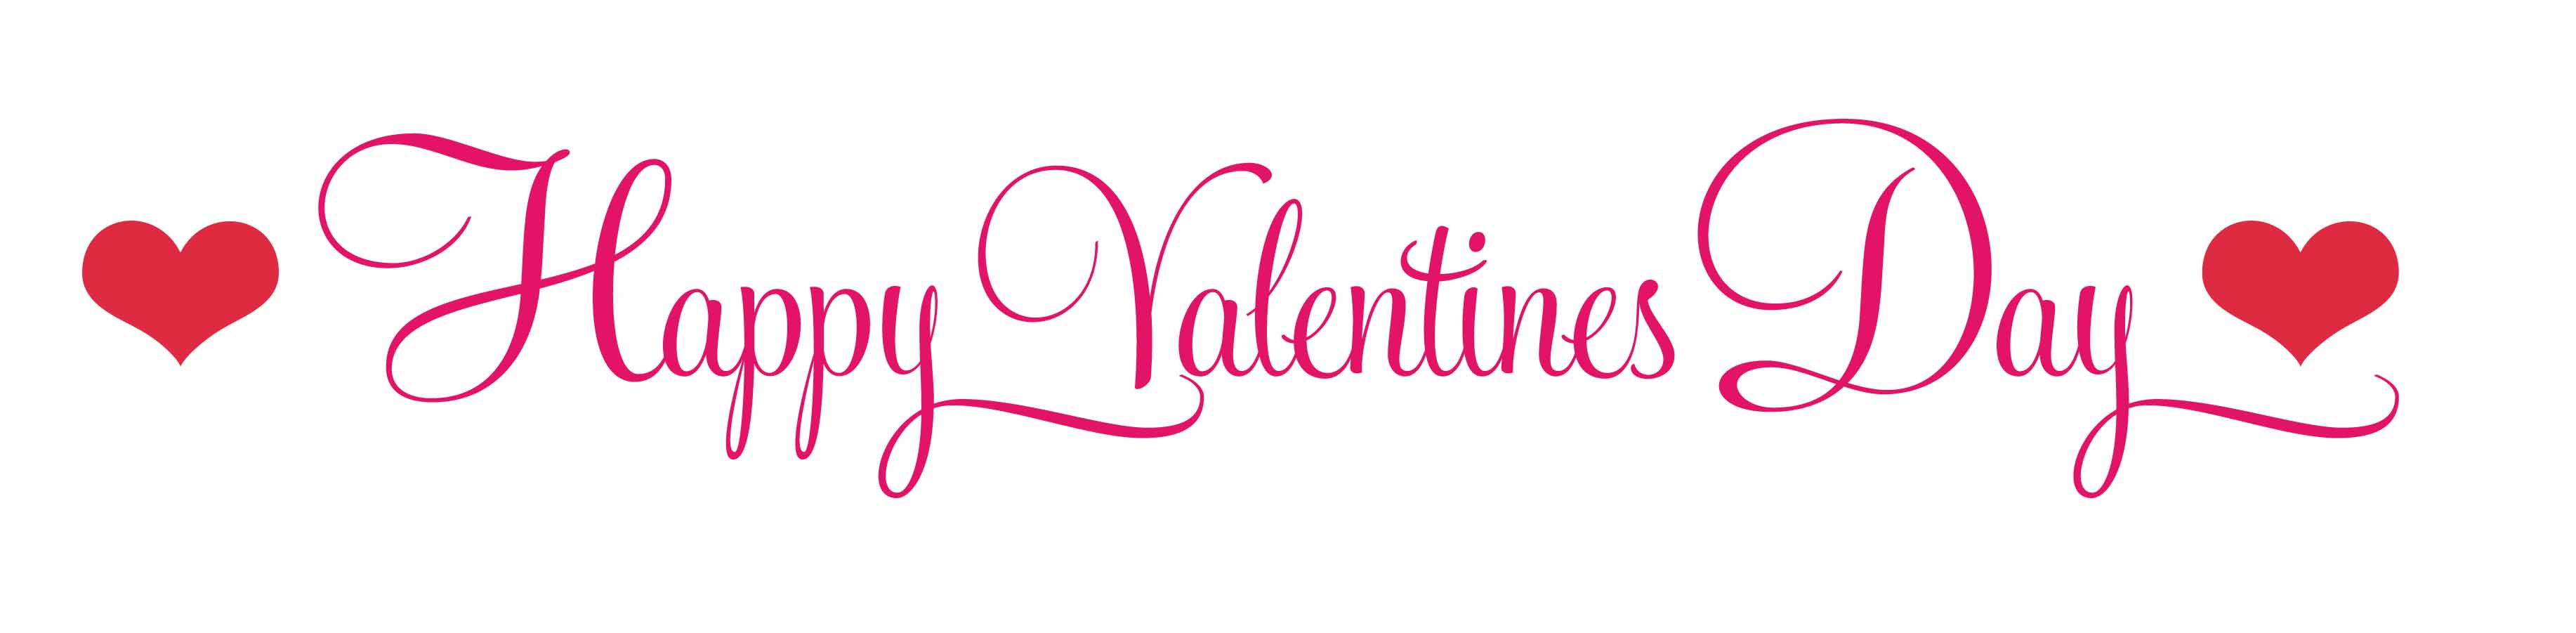 Valentines day clipart for .  - Happy Valentines Day Clip Art